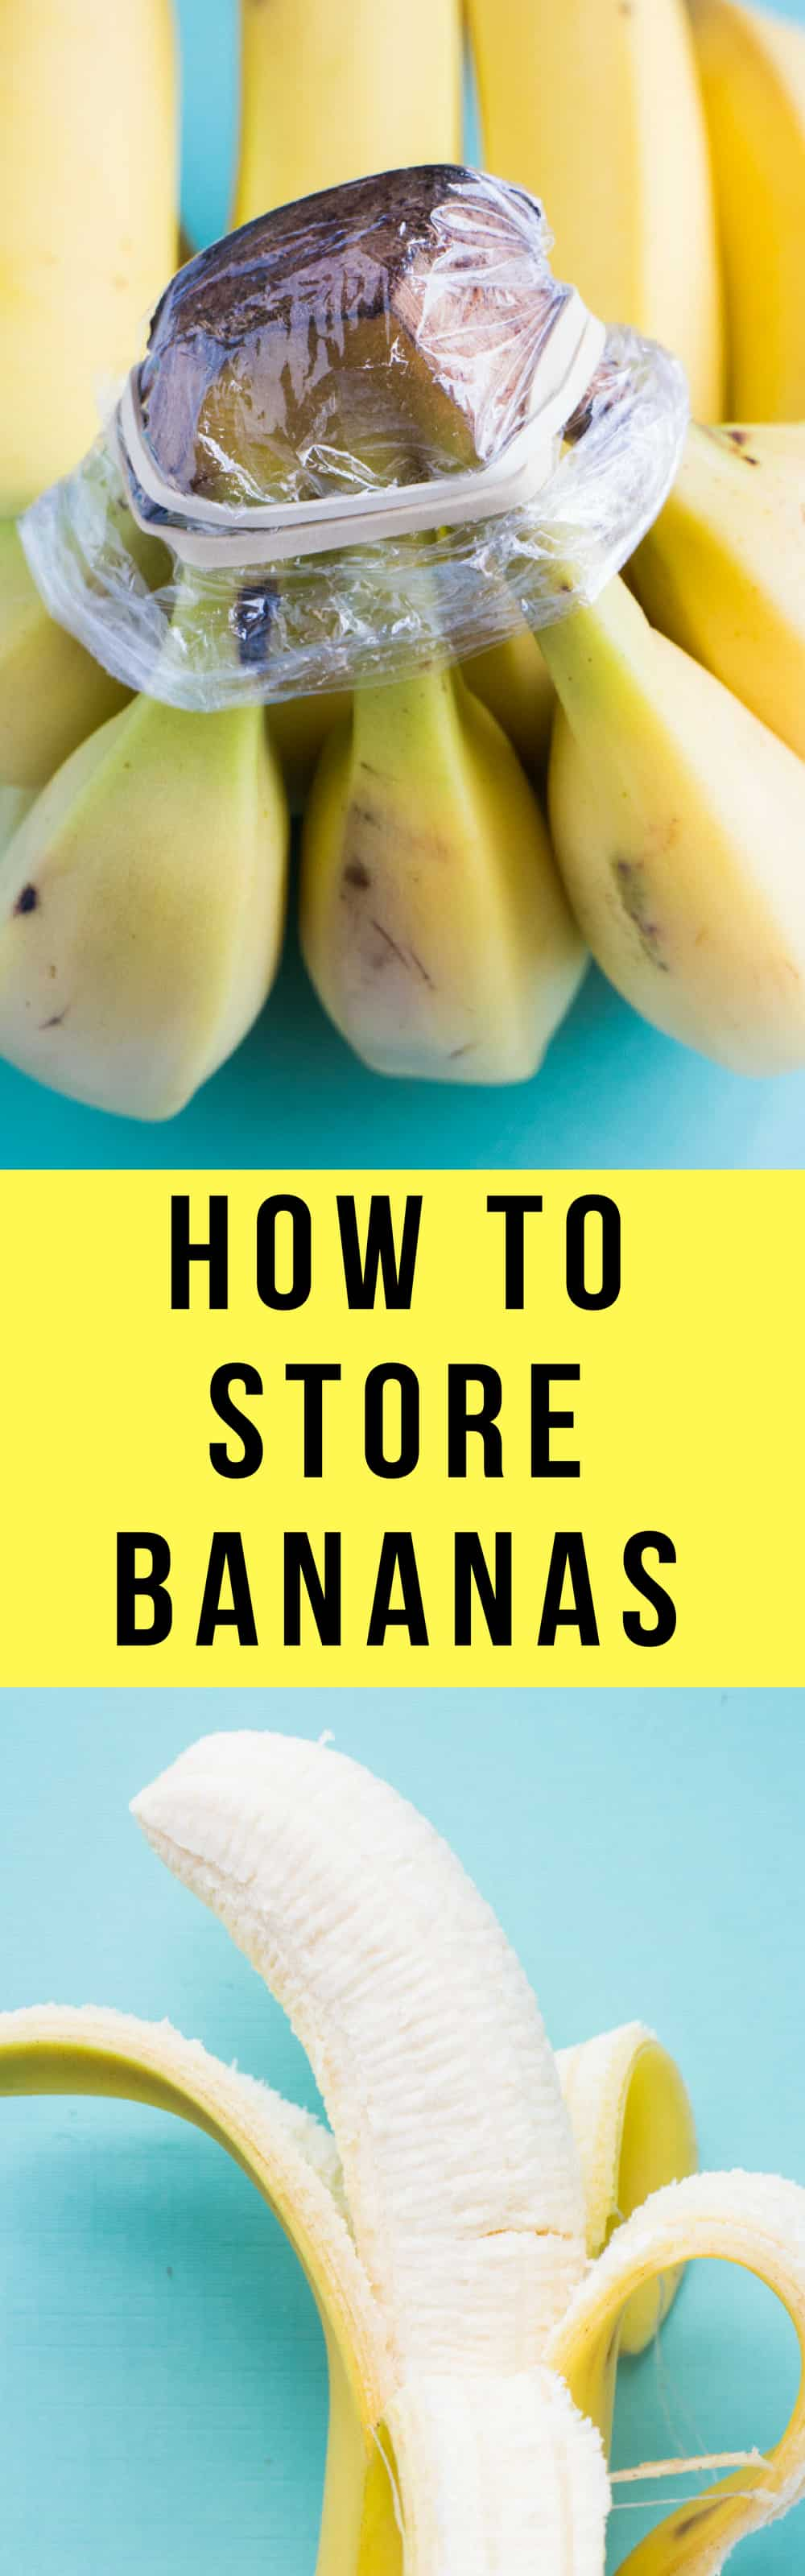 How to Store Bananas!  These easy tips will prevent your bananas from turning brown!  Food storage tricks includes storing with other fruit, plastic wrap, banana trees, in fridge and how to freeze bananas!  Learn the best ways to store bananas and keep them green for longer!